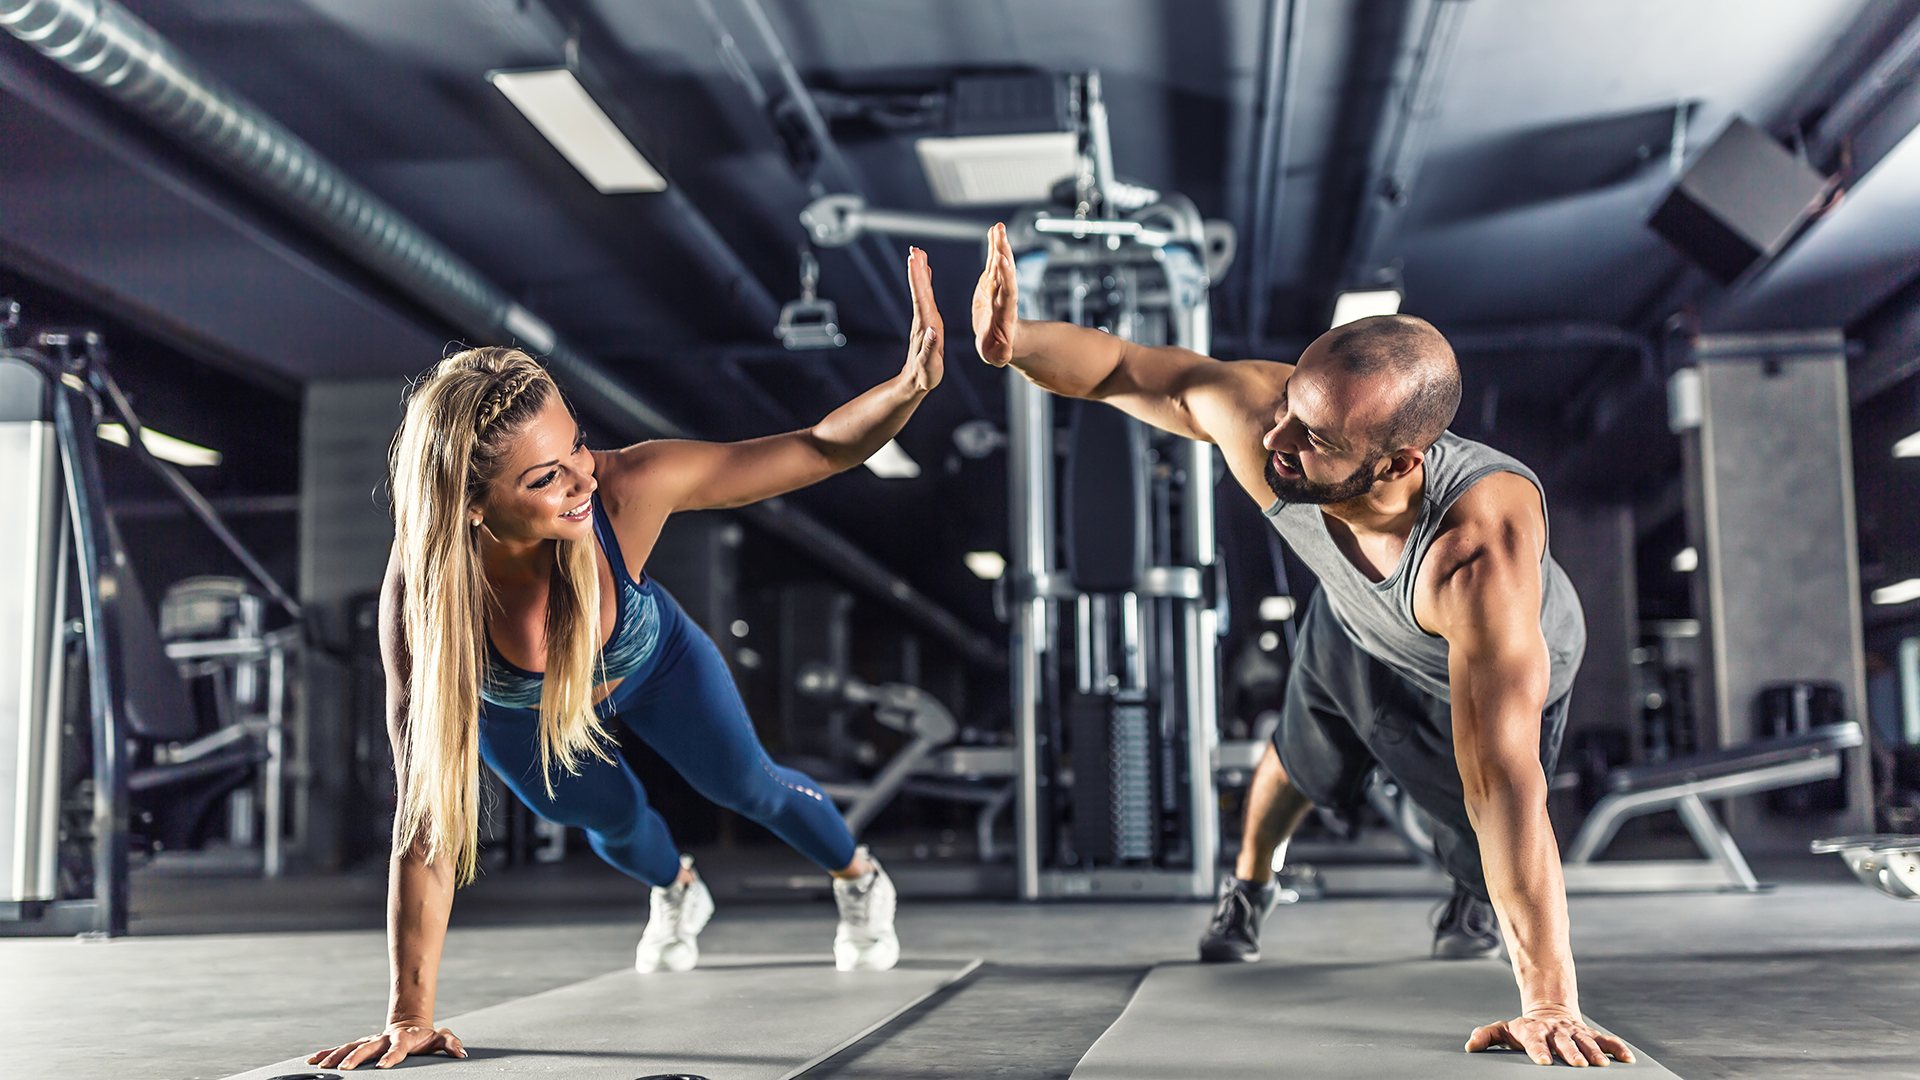 Was bedeutet Fitness-Training im WORKOUT – Fitness & Wellness?